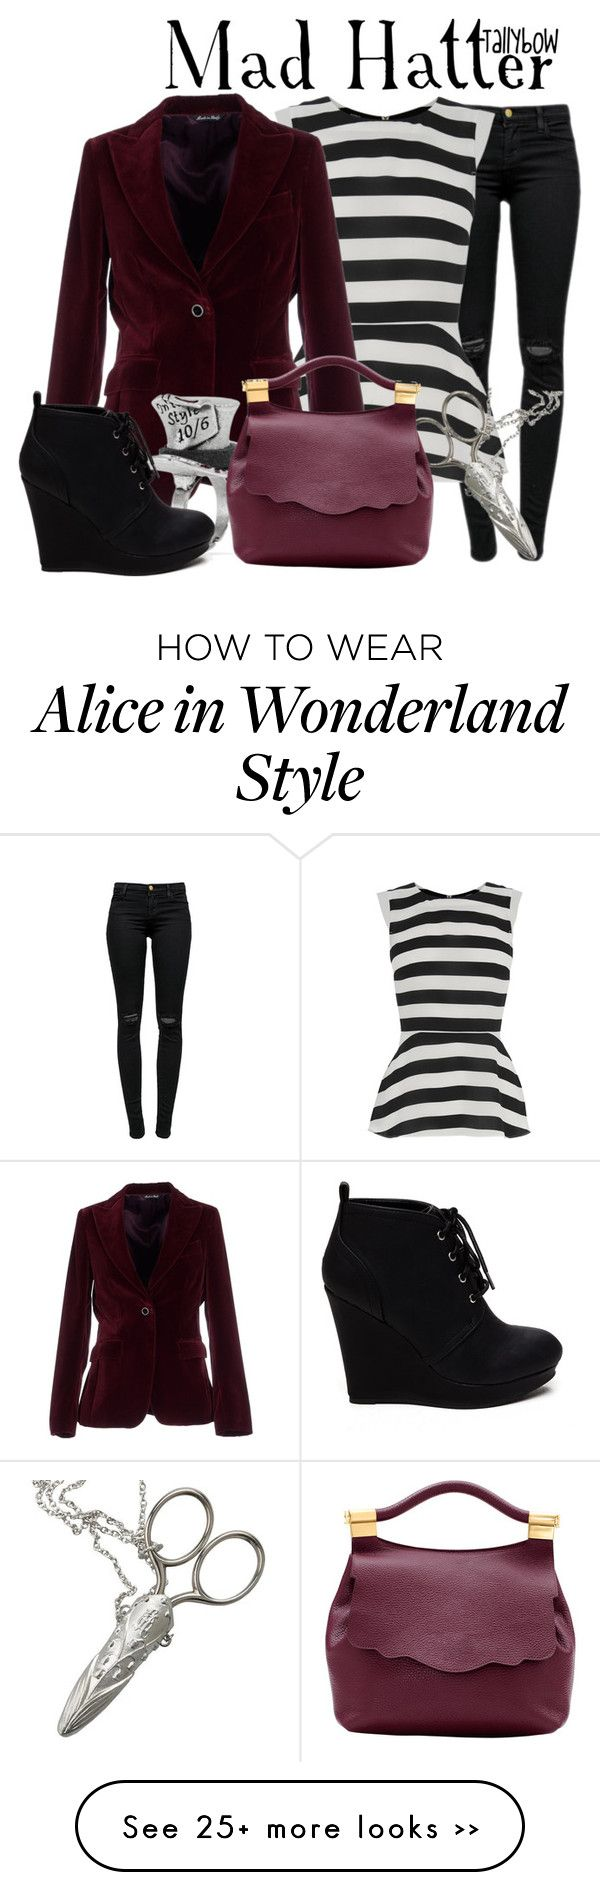 """""""Mad Hatter (Tim Burton's Alice in Wonderland)"""" by tallybow on Polyvore"""